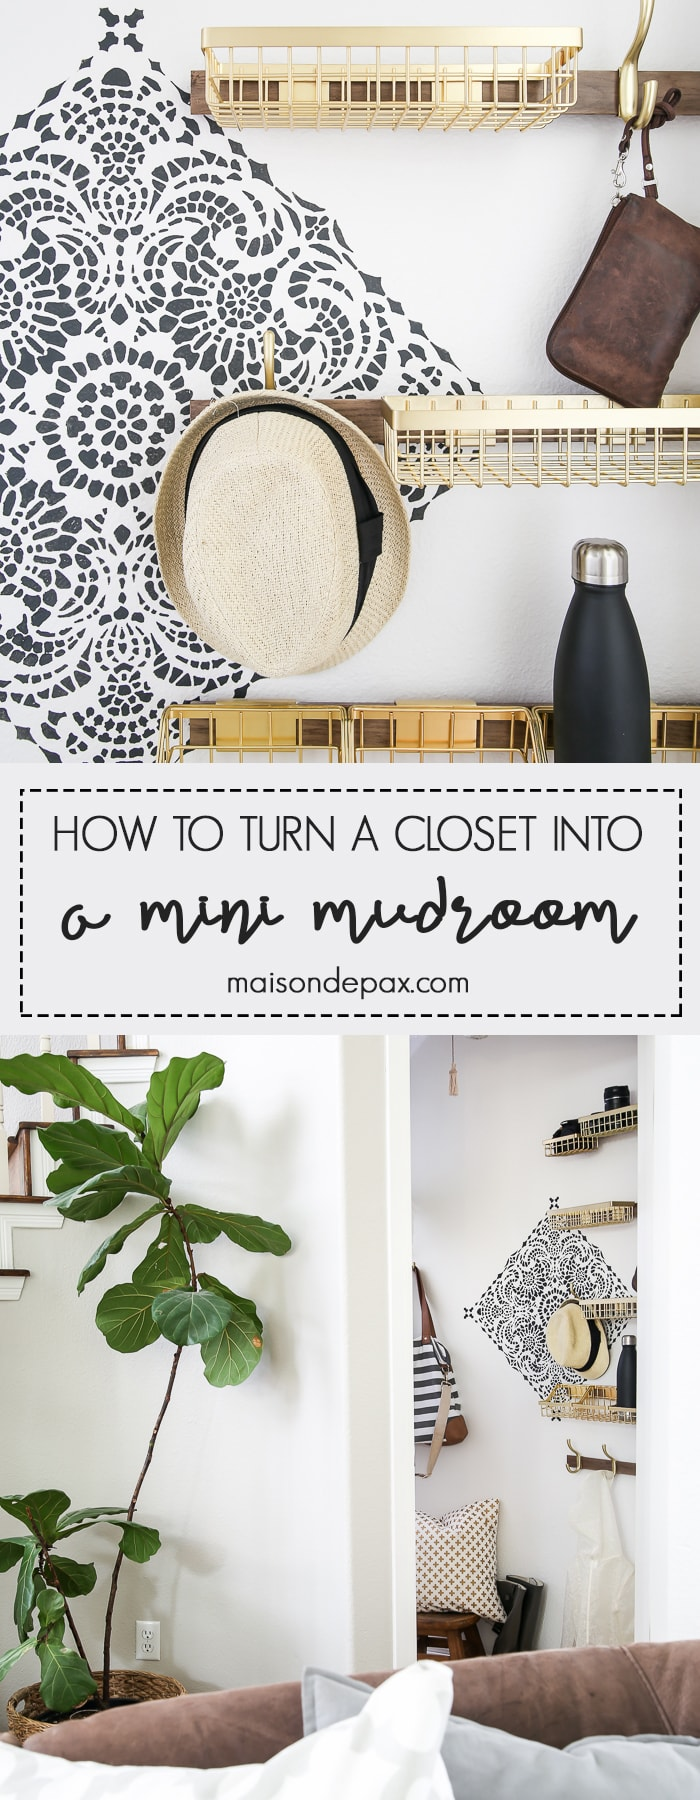 How to turn closet into mudroom: What an adorable space! Baskets and hooks turn a closet under the stairs into a functional mudroom space for a family.